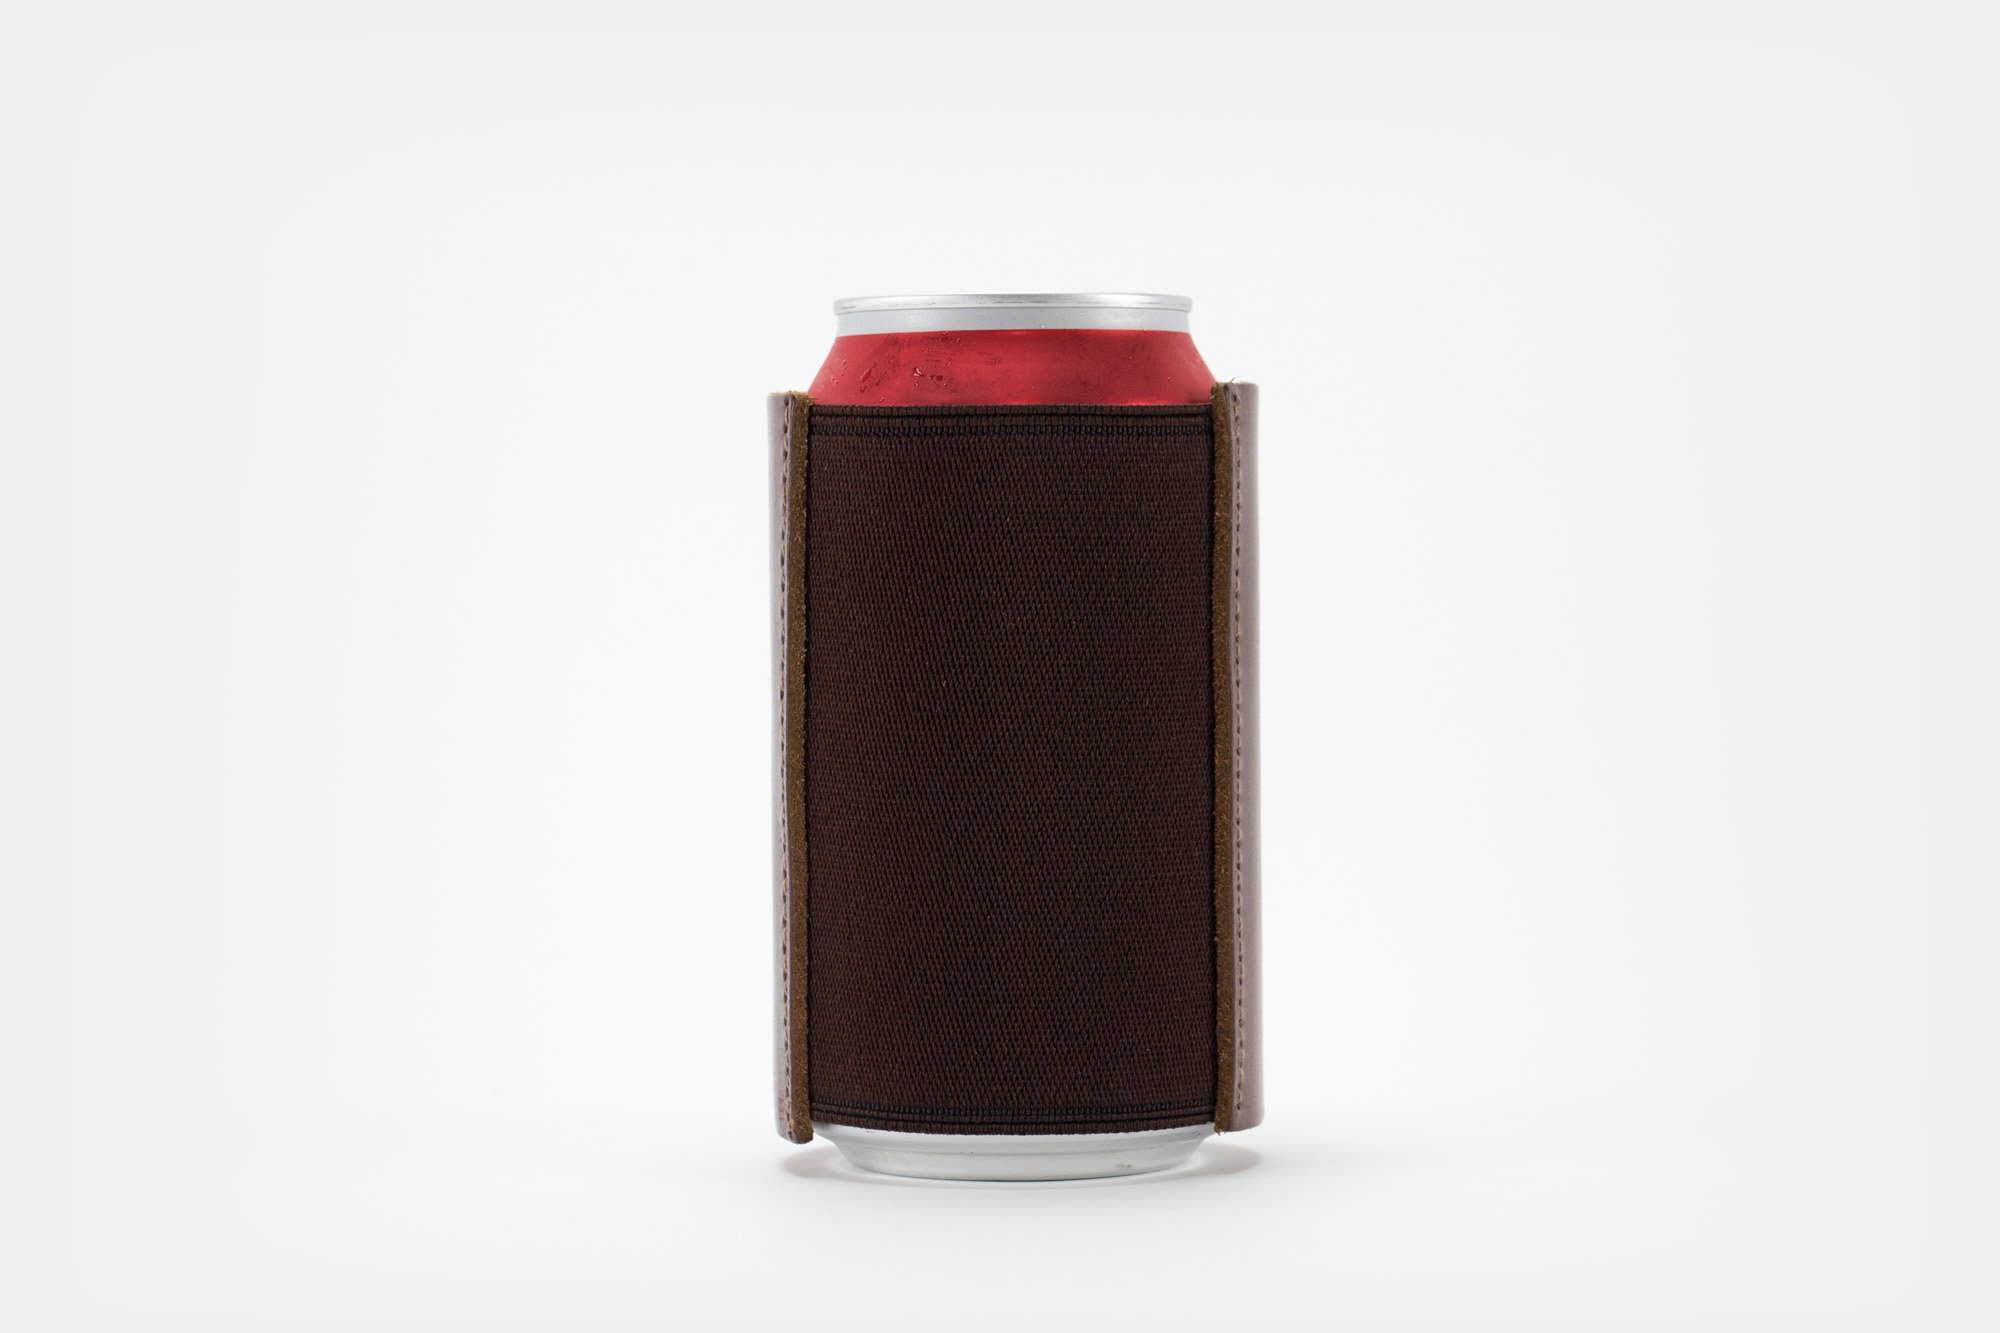 Farrah Design - The Beer Sleeve